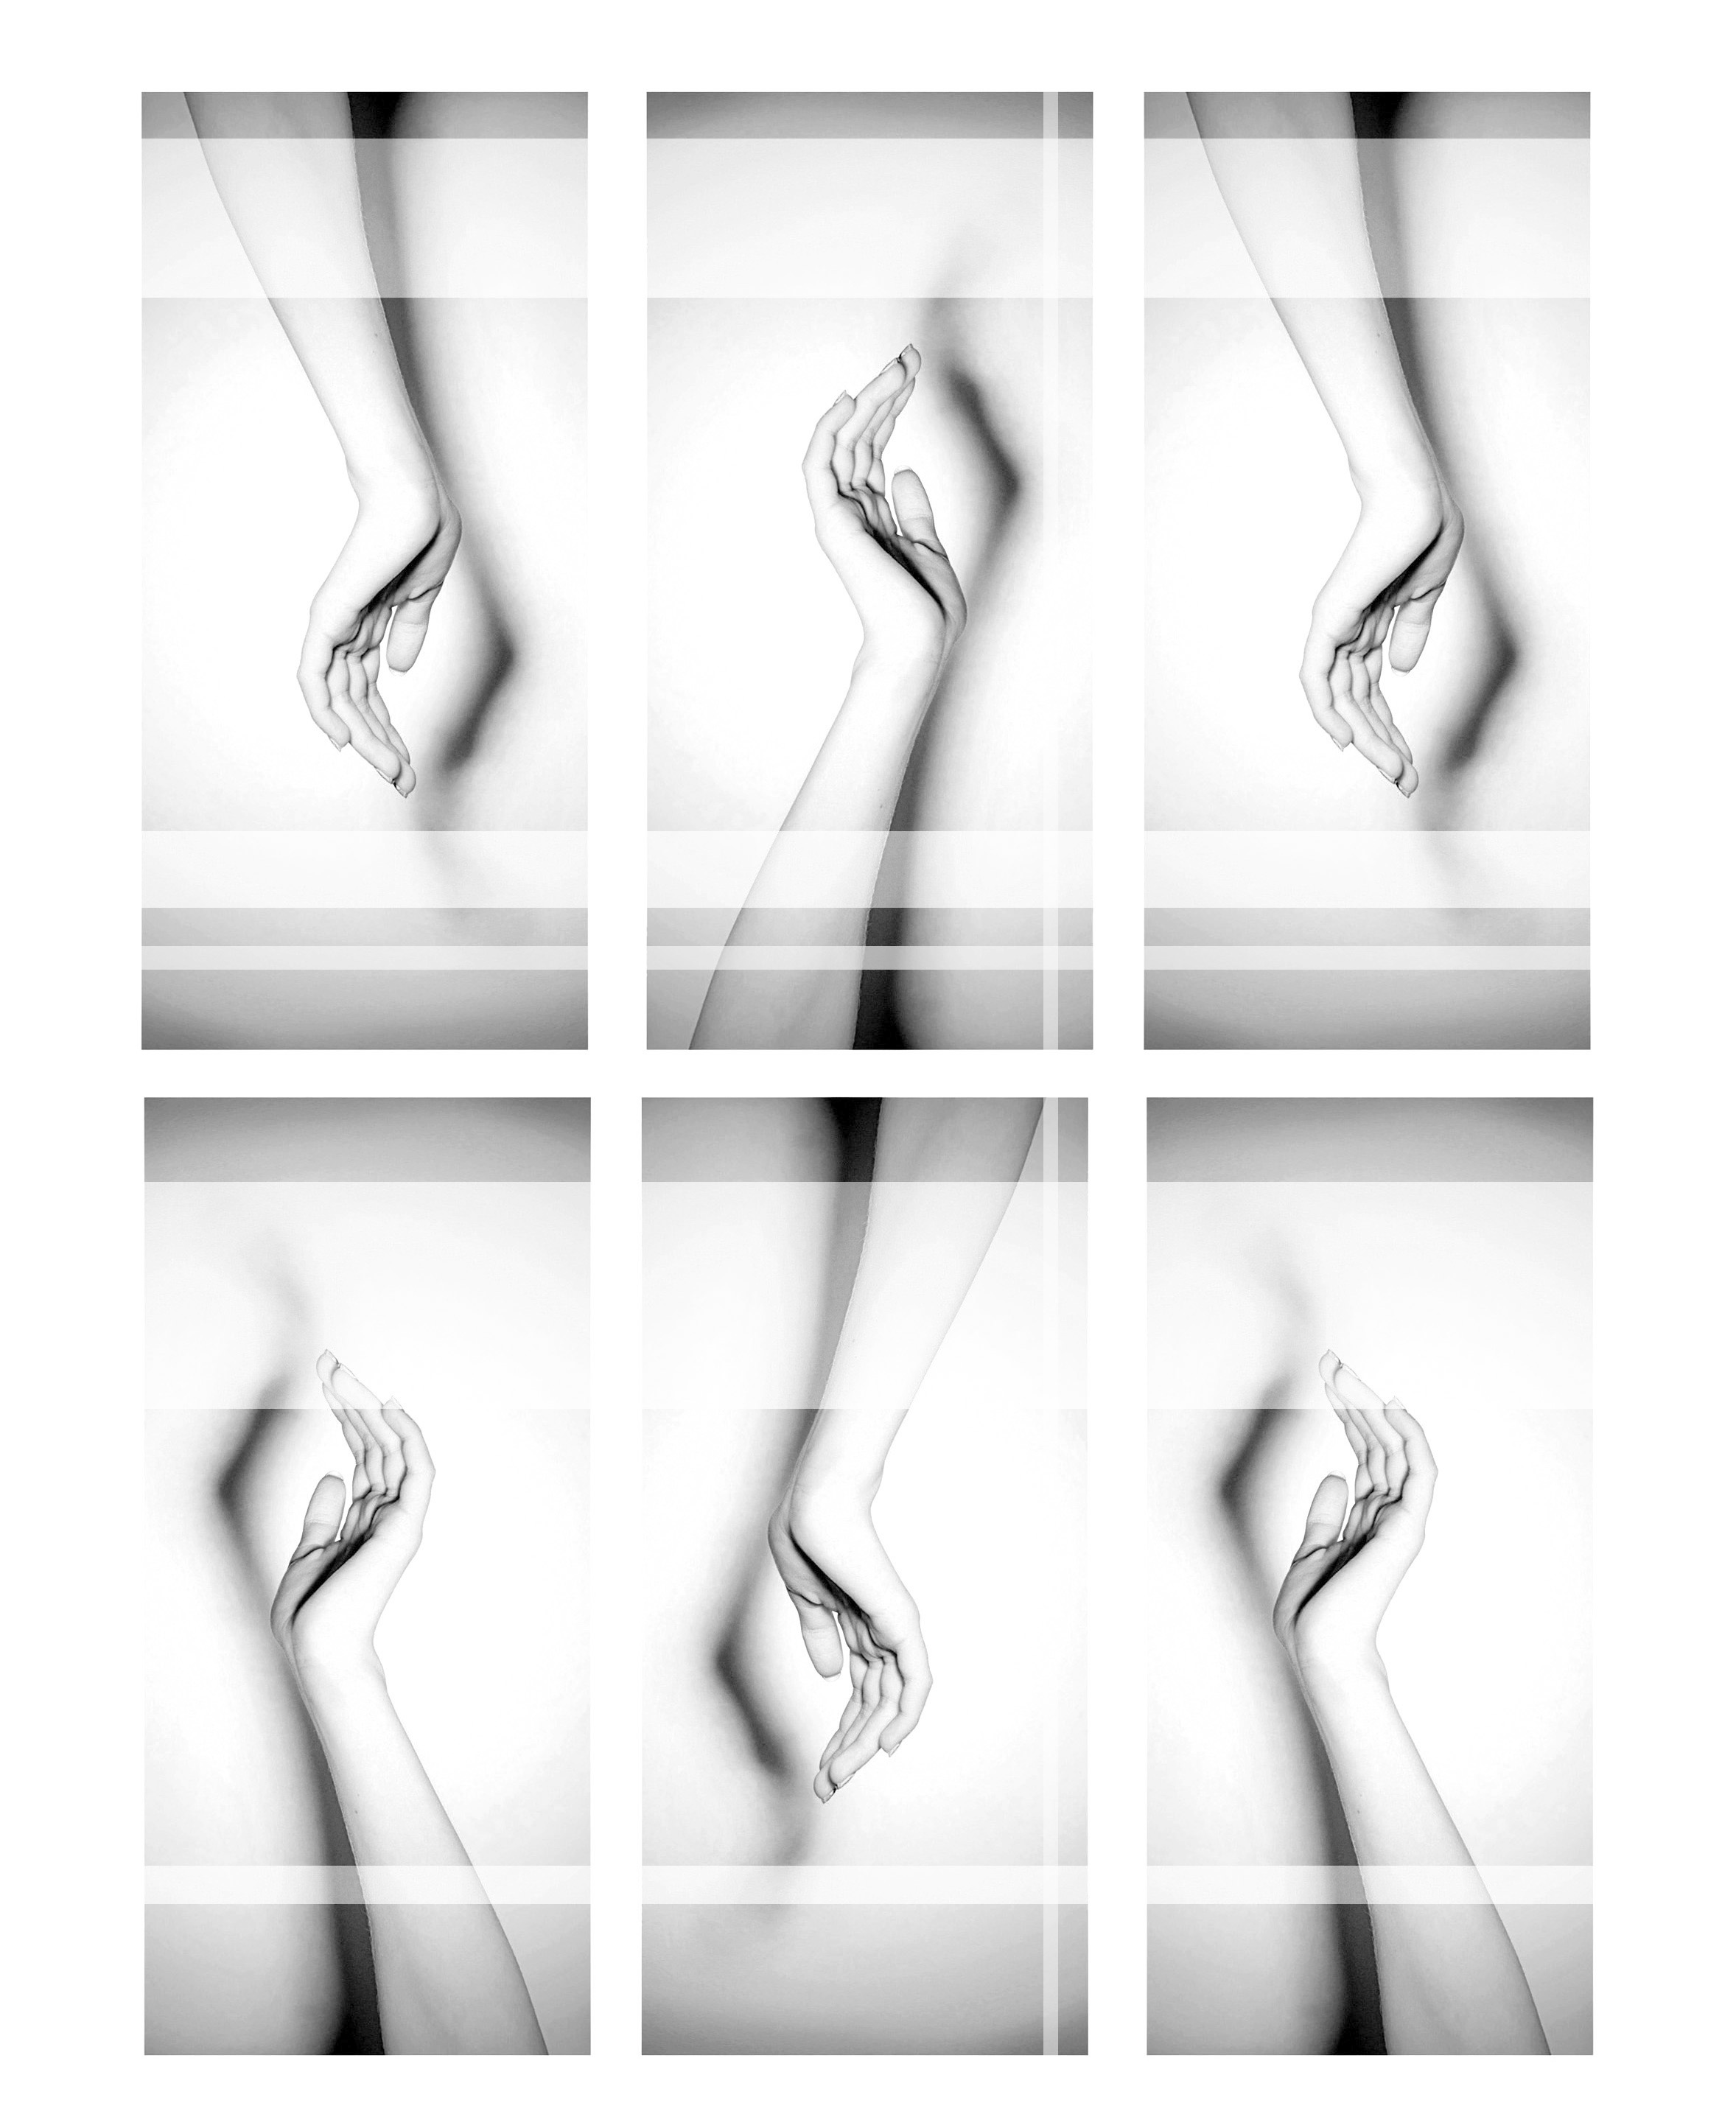 6 hands mono 3 abstract bw re edit.jpg